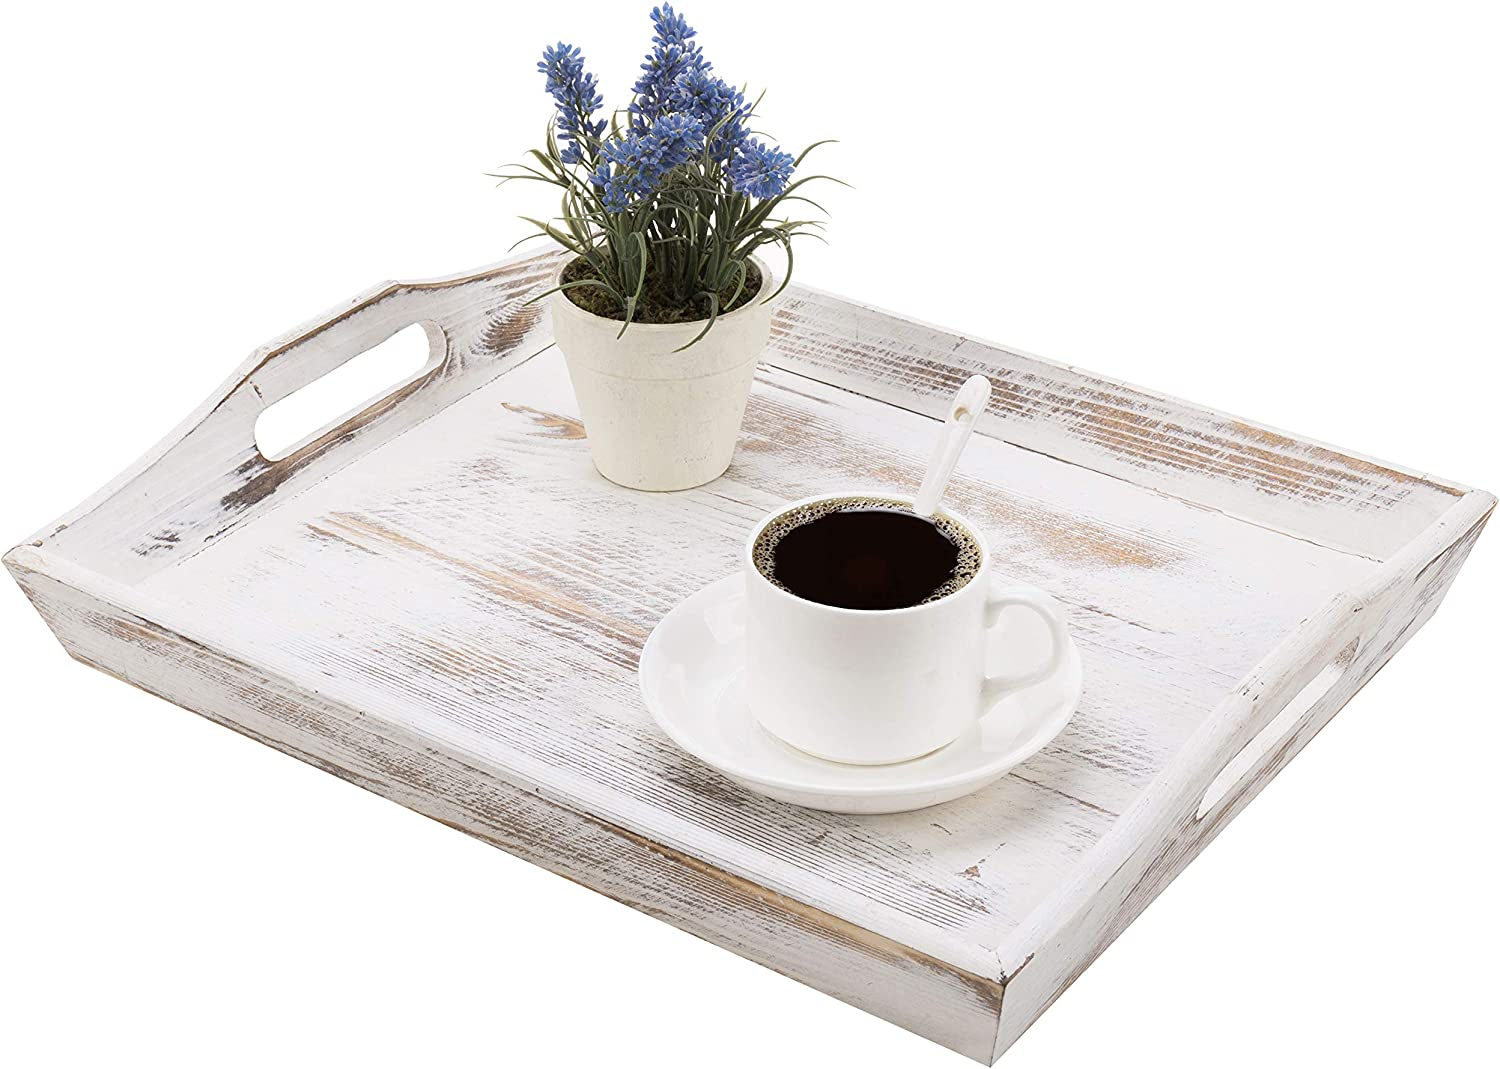 MyGift 16-inch Shabby Whitewashed Wood Breakfast Serving Tray with Cutout Handles